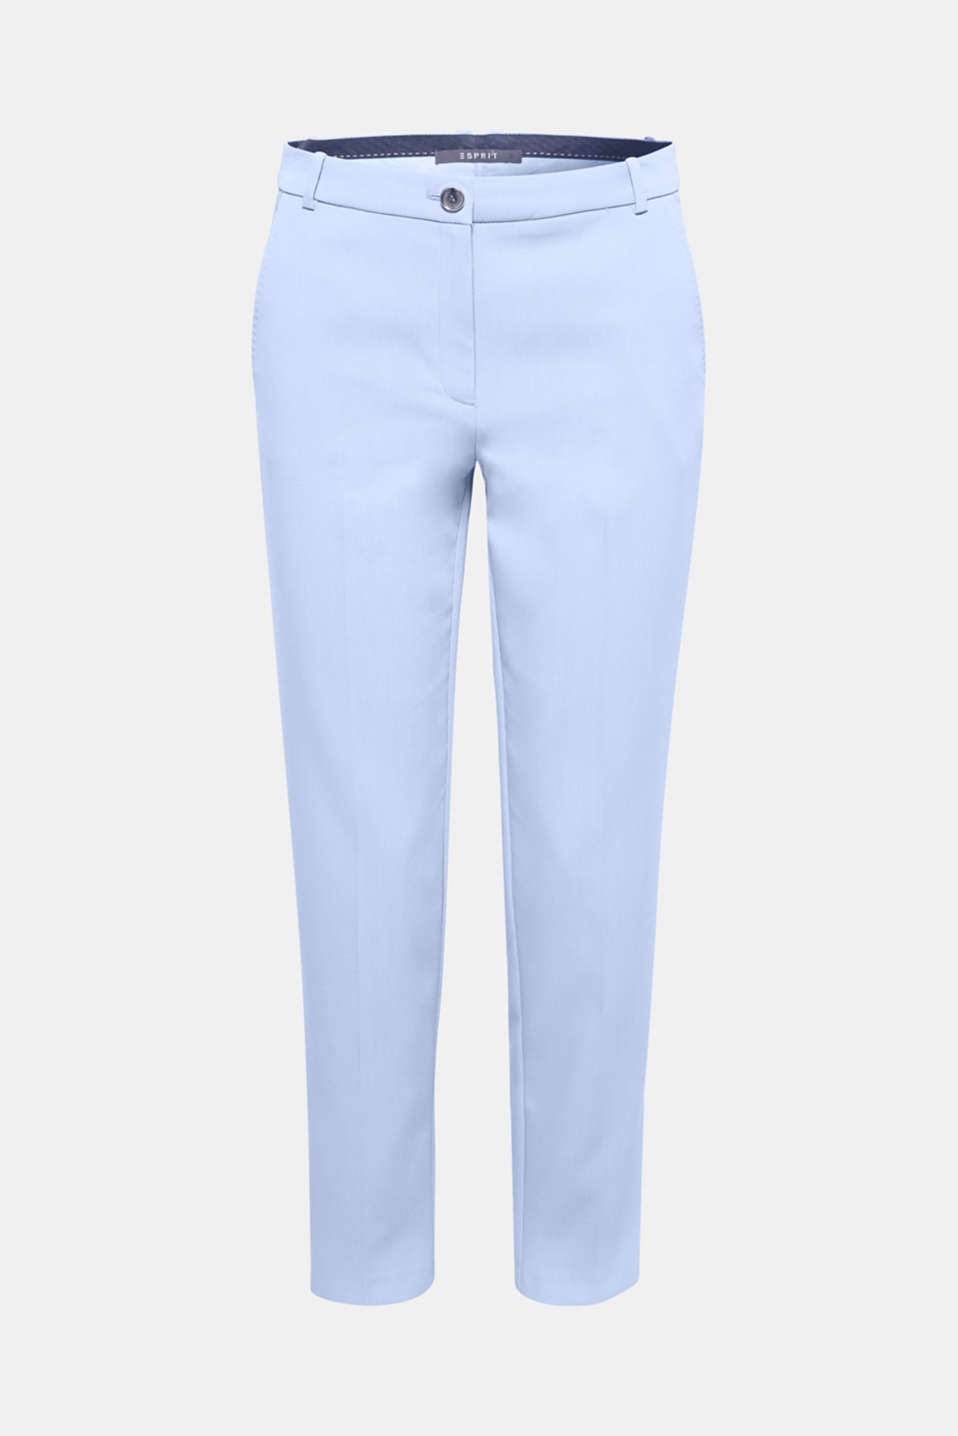 These classic business trousers are a perfect accompaniment with the fine twill fabric and pressed pleats!